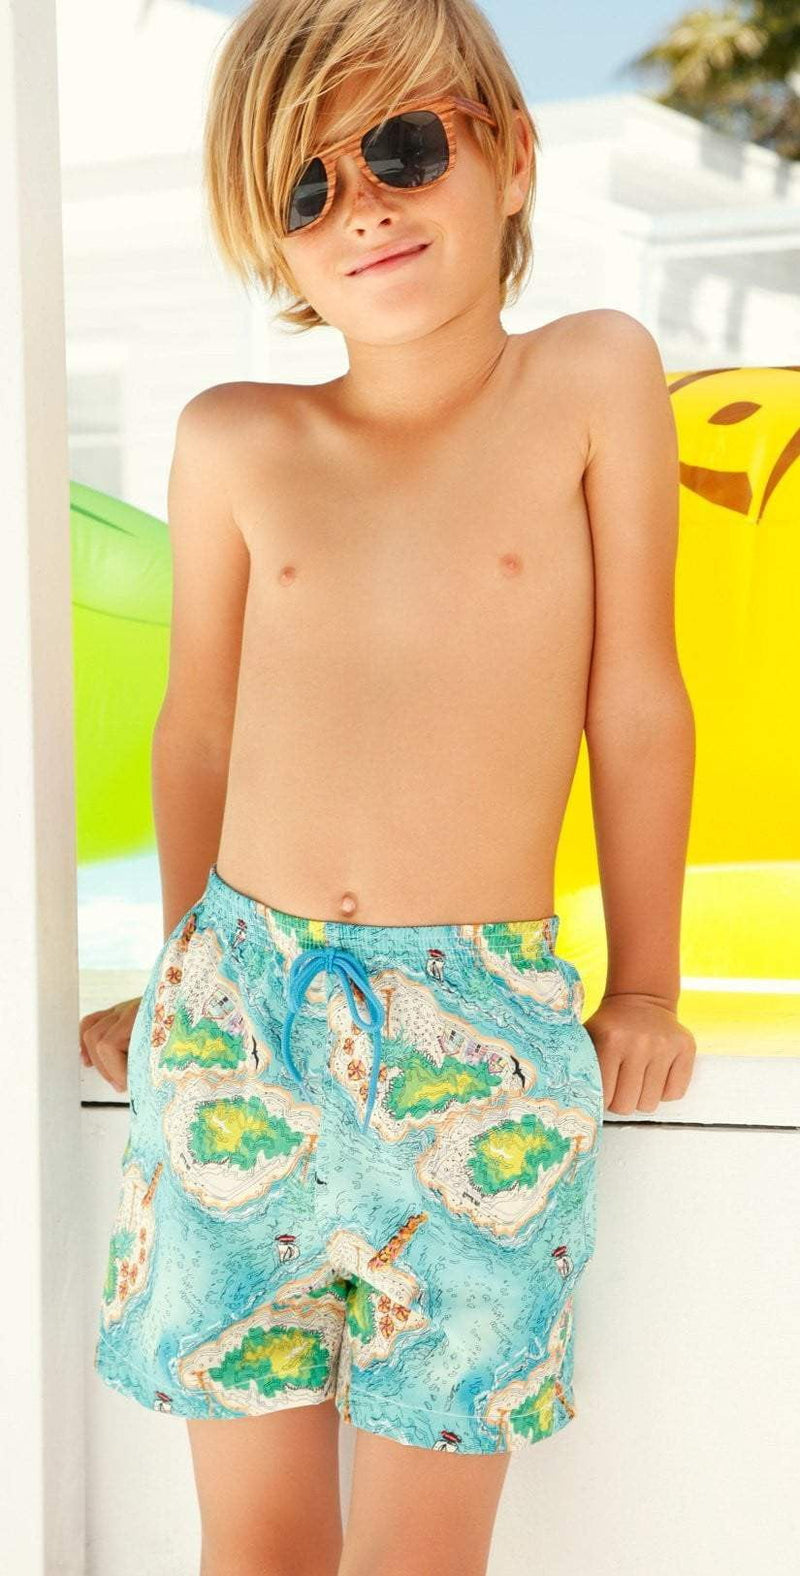 Little Peixoto Boys Swim Trunks In Island Hopping B800-P61: